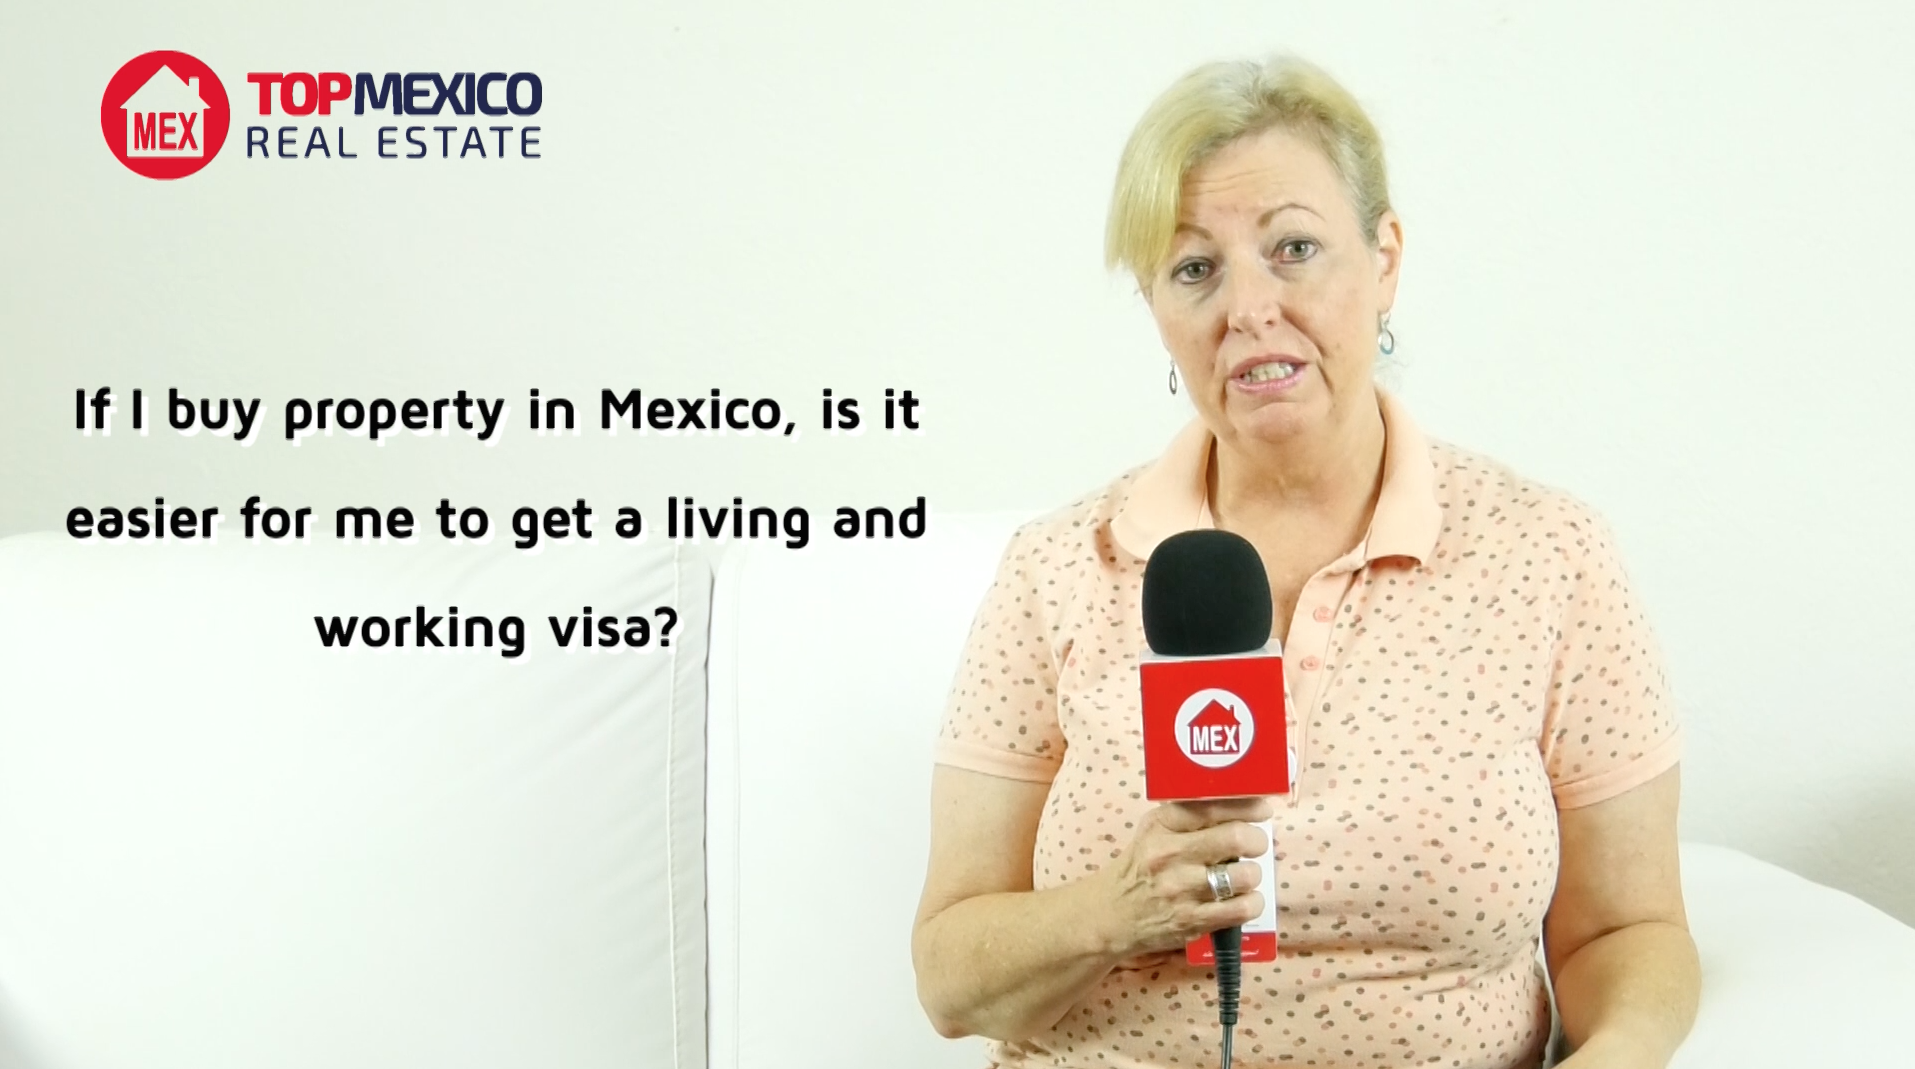 Can I get a Visa if I Purchase Property in Mexico?